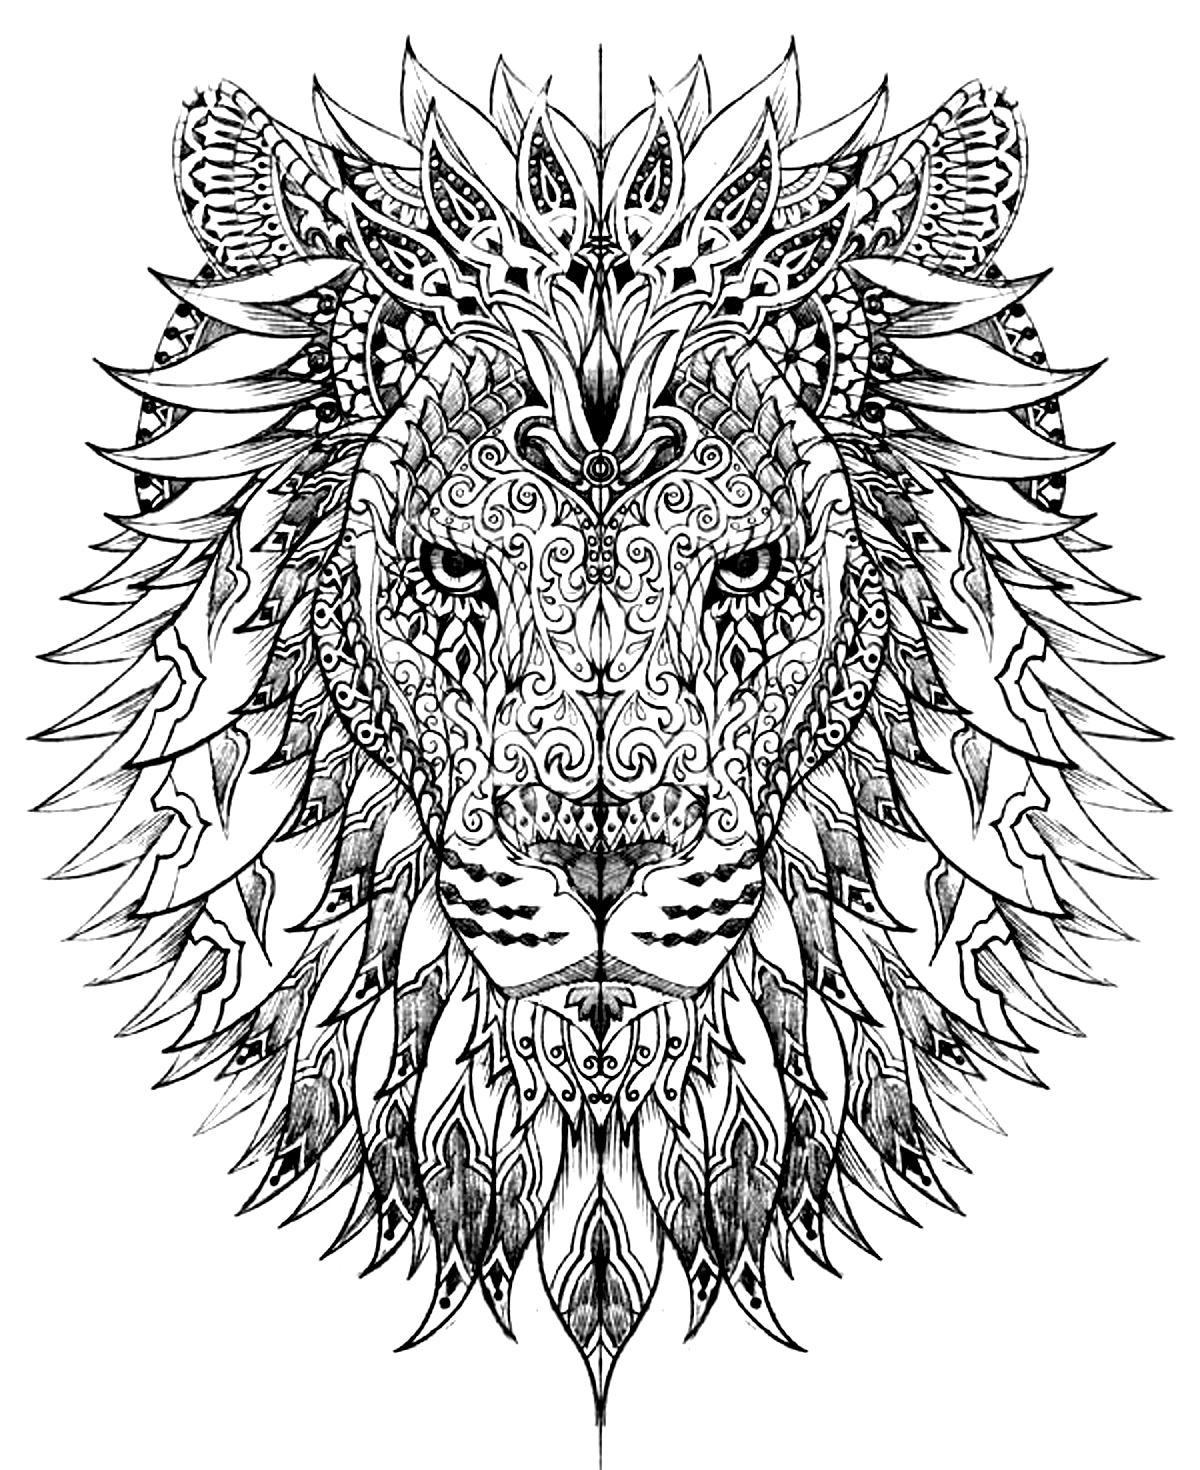 hard coloring pages for adults very difficult coloring pages for adults at getdrawings coloring hard for pages adults